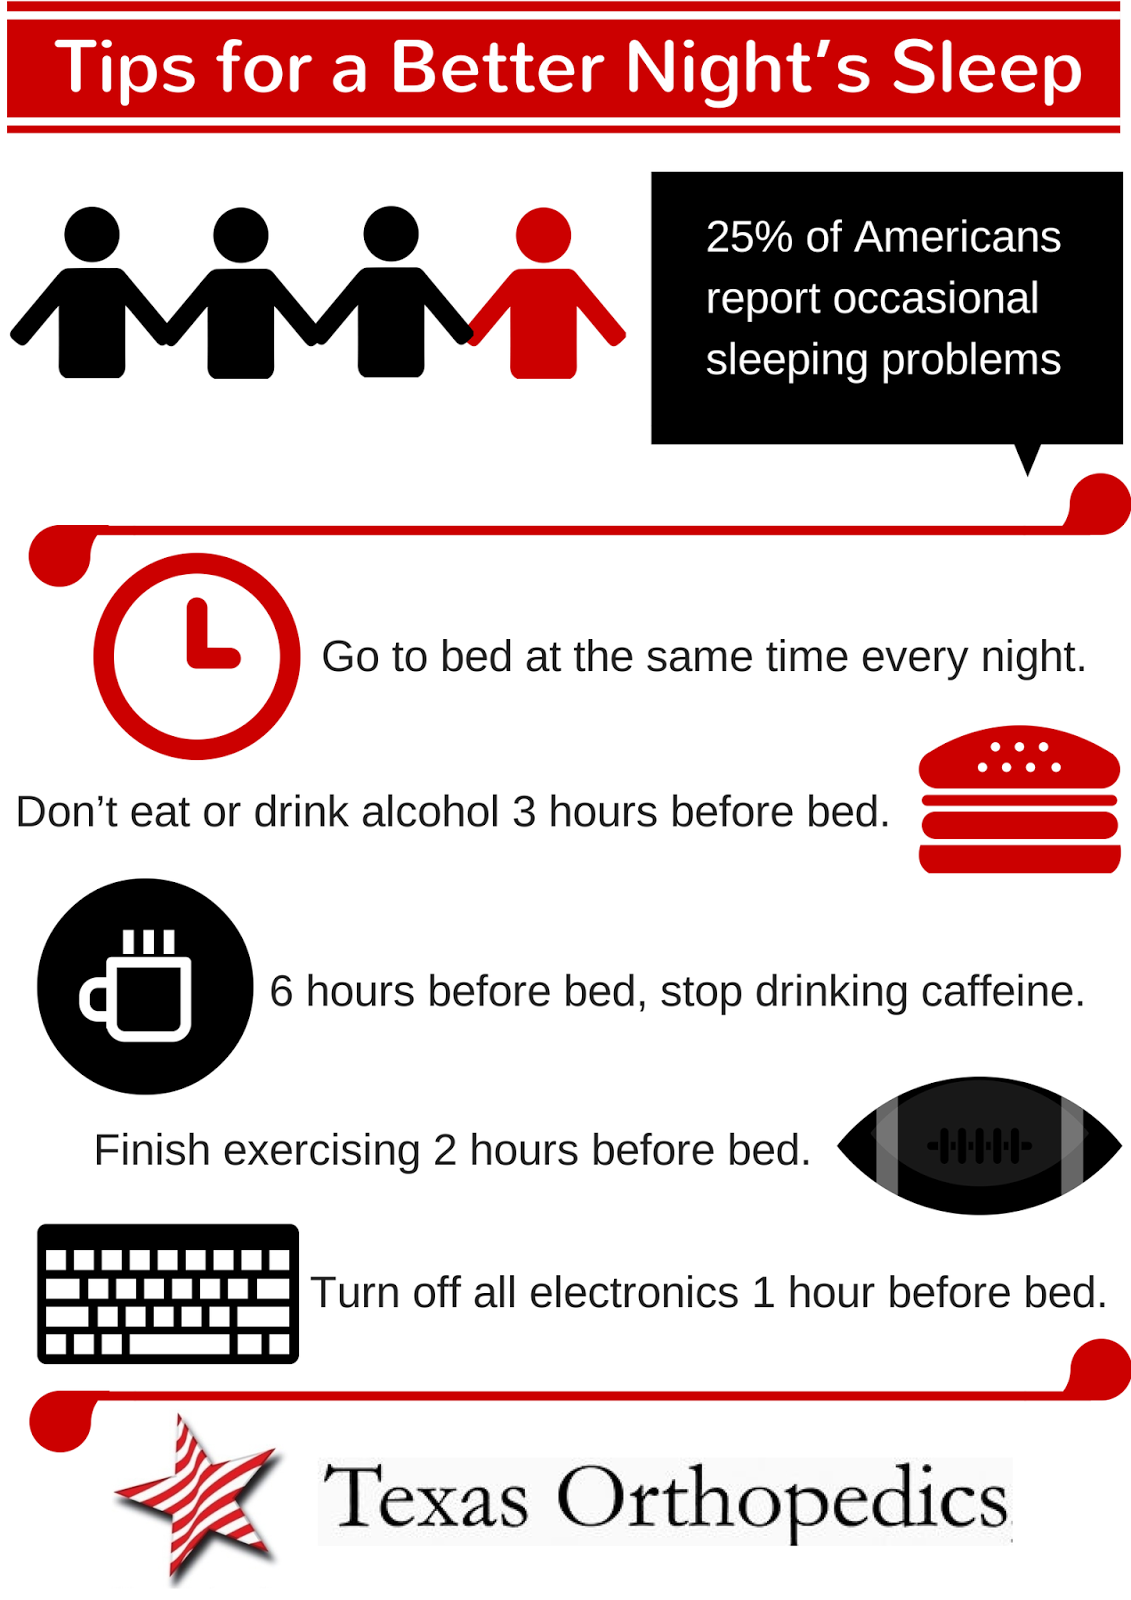 Most Of Us Have A Hard Time Getting To Sleep Yet Not Getting Good Quality Sleep Can Lead To Significant Health Problems